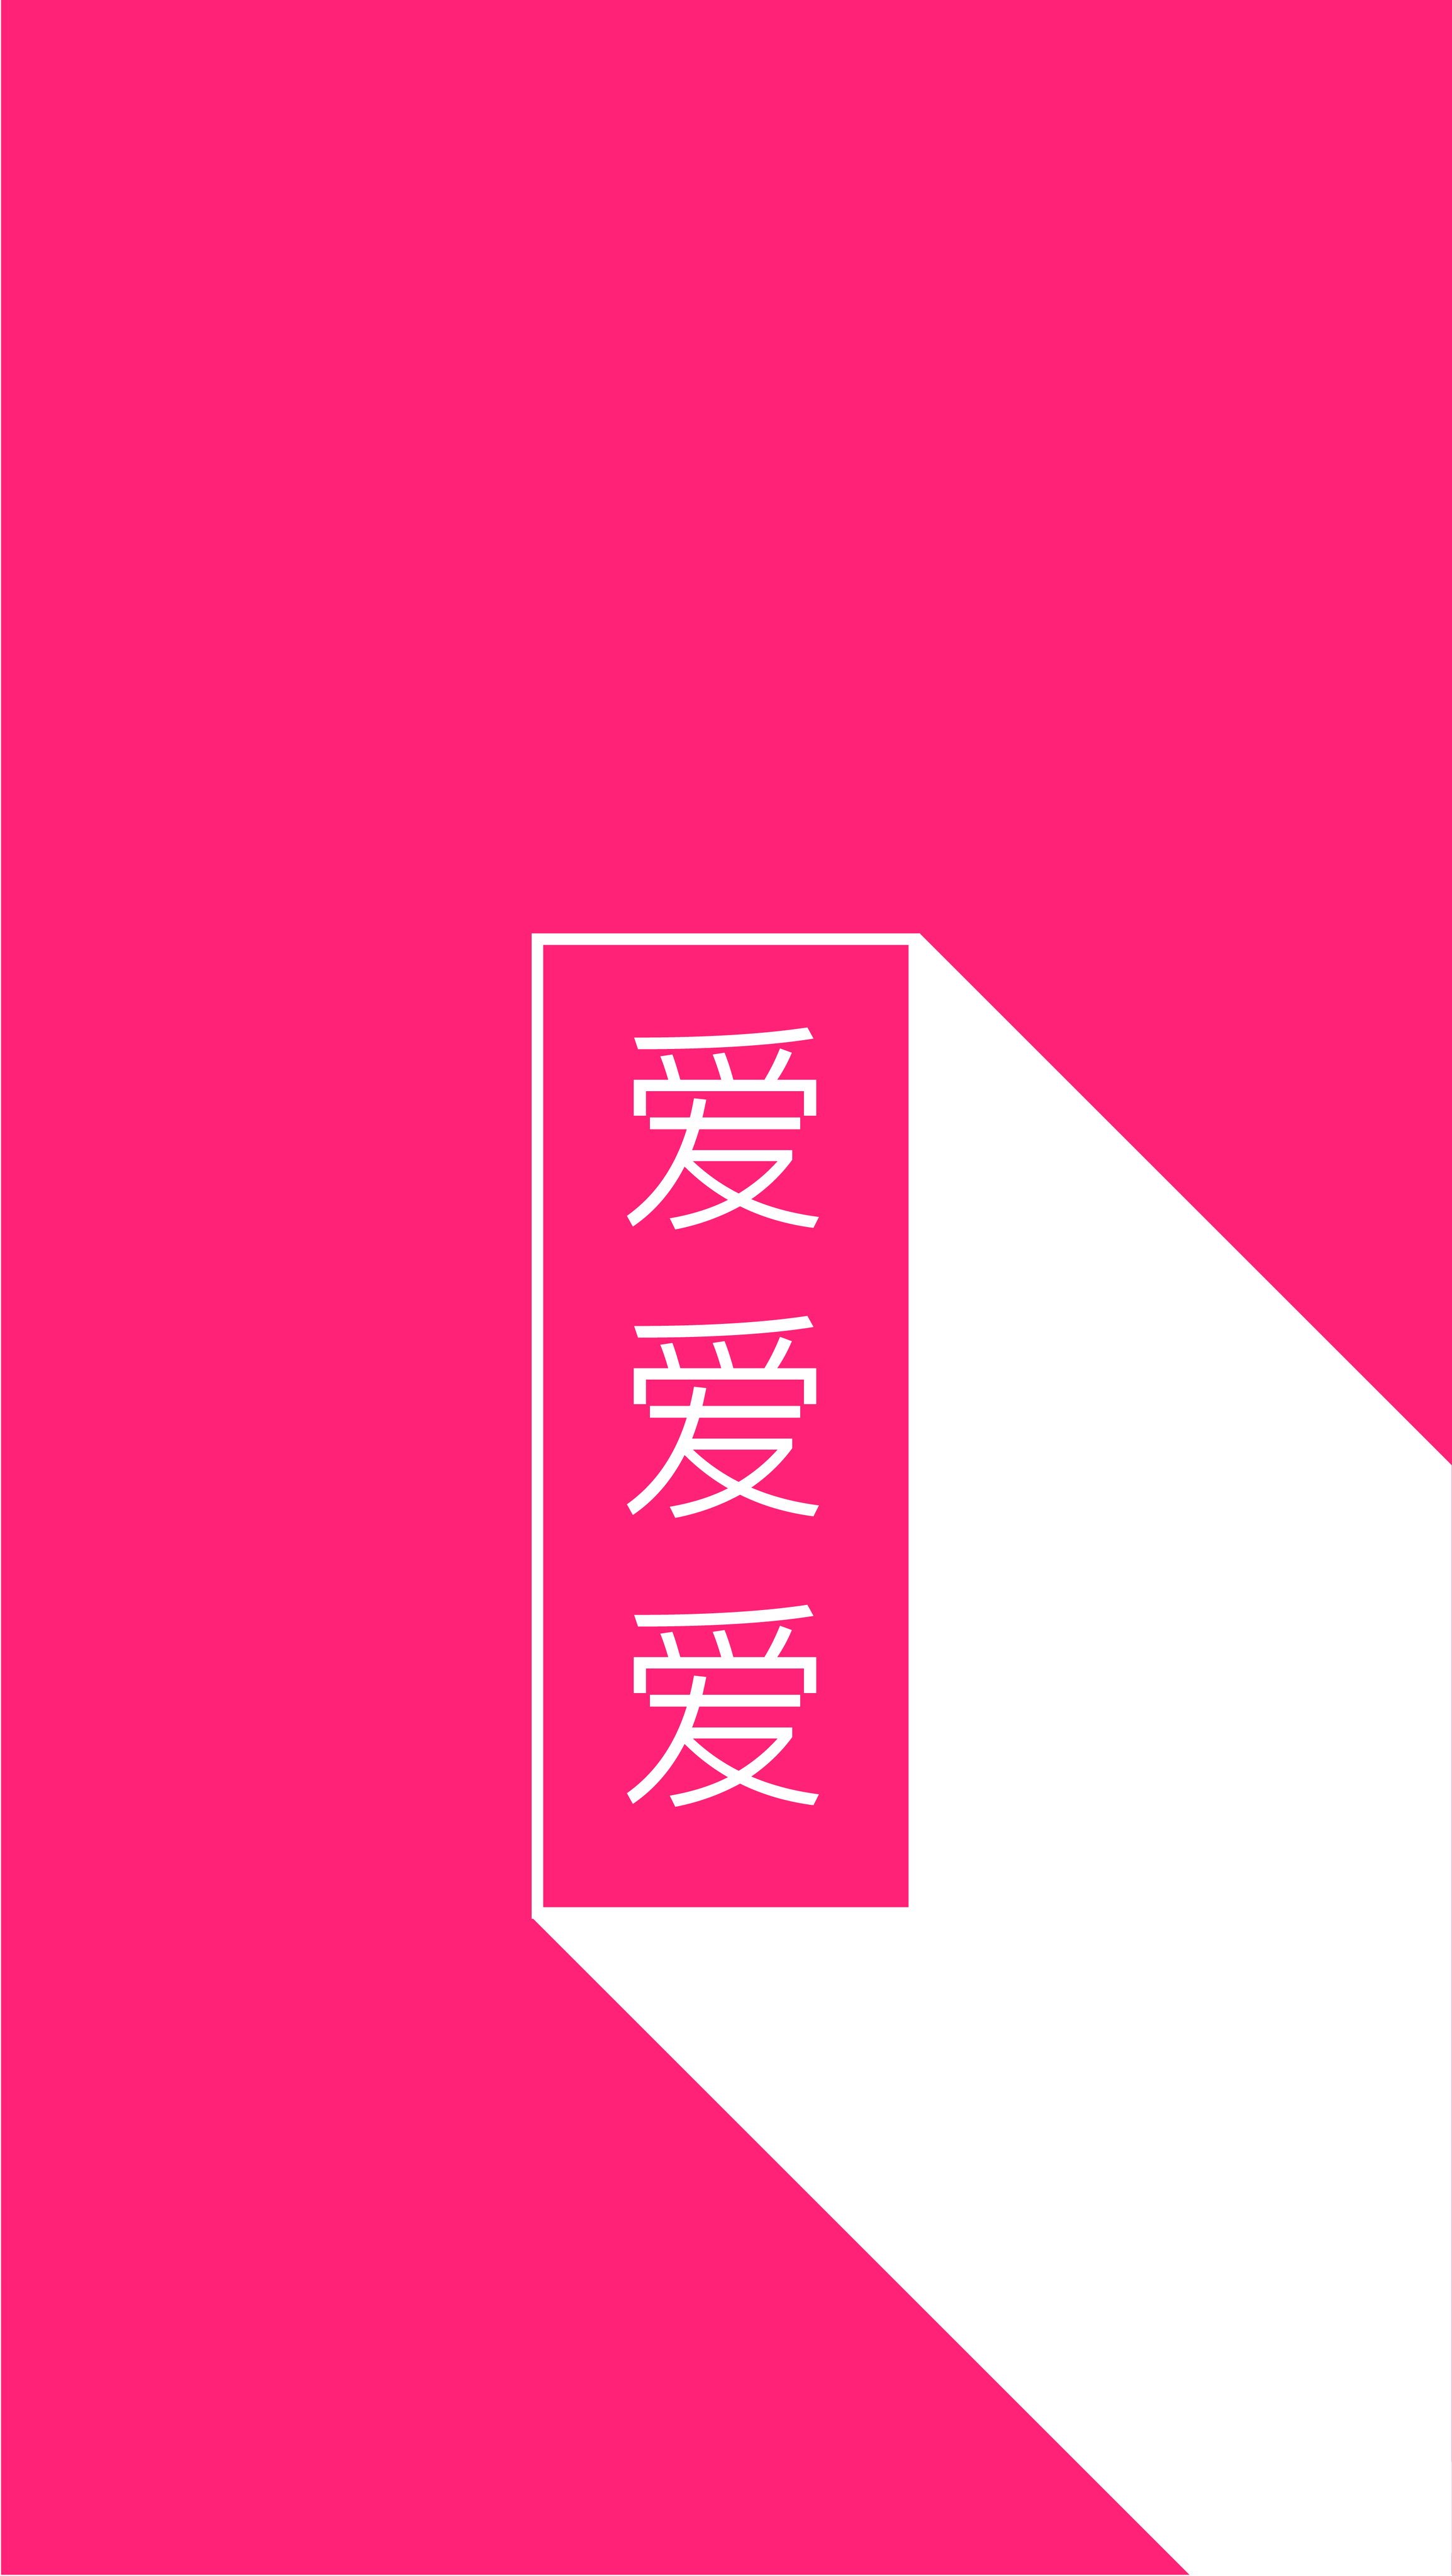 @arvowear #arvo #watch #minimal #pink #hotpink #white #chinese #mandarin # wallpaper #background #phone #iphone #samsung #smartphone